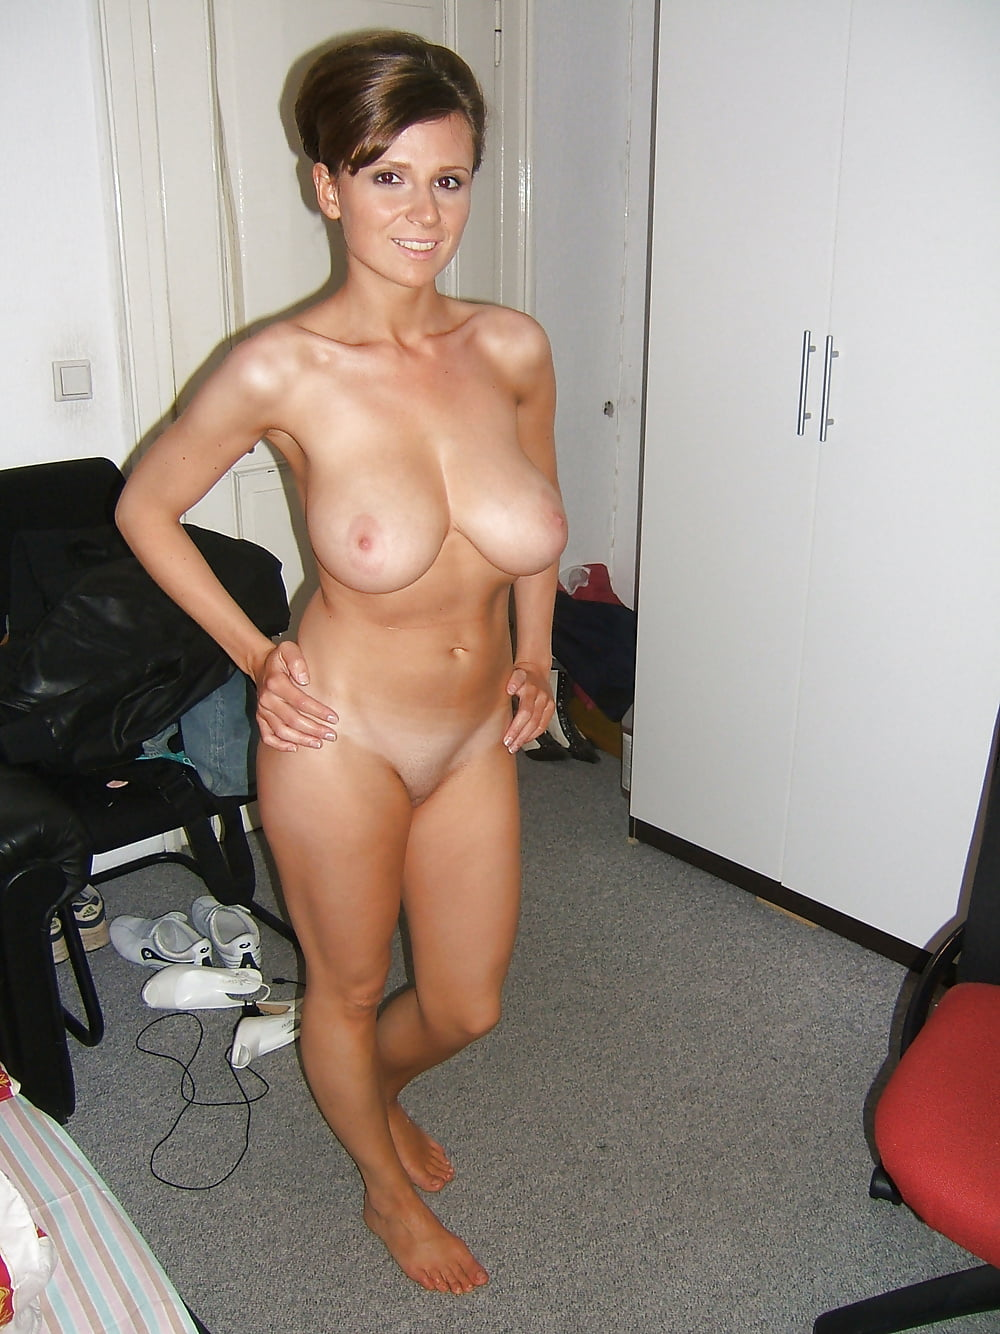 Hot amateur wives nude photos